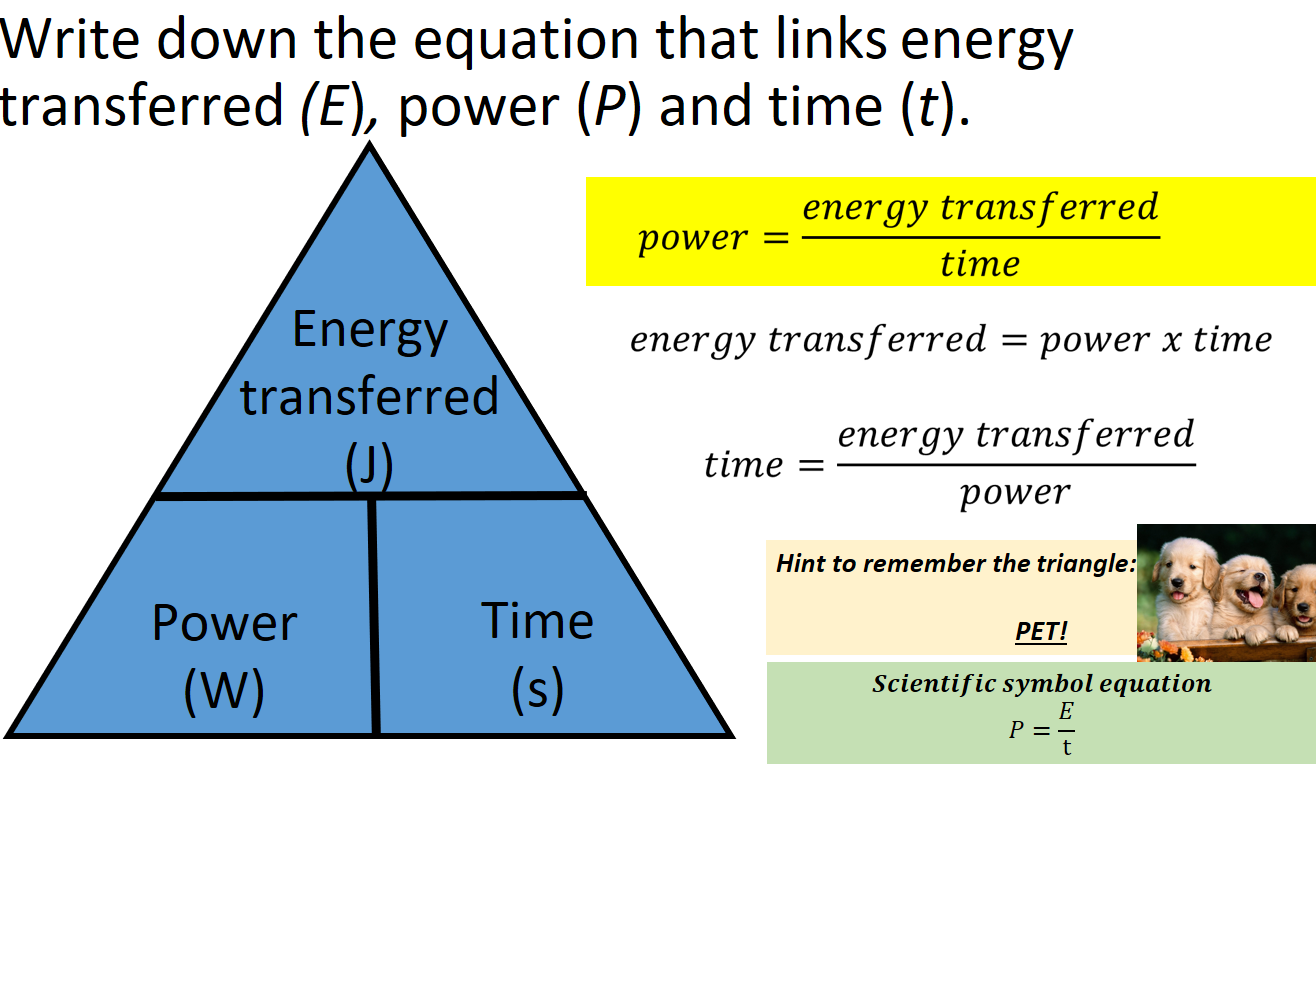 AQA Trilogy Physics Equations Paper 1&2 Triangles, Rearrangements, Memory Aids